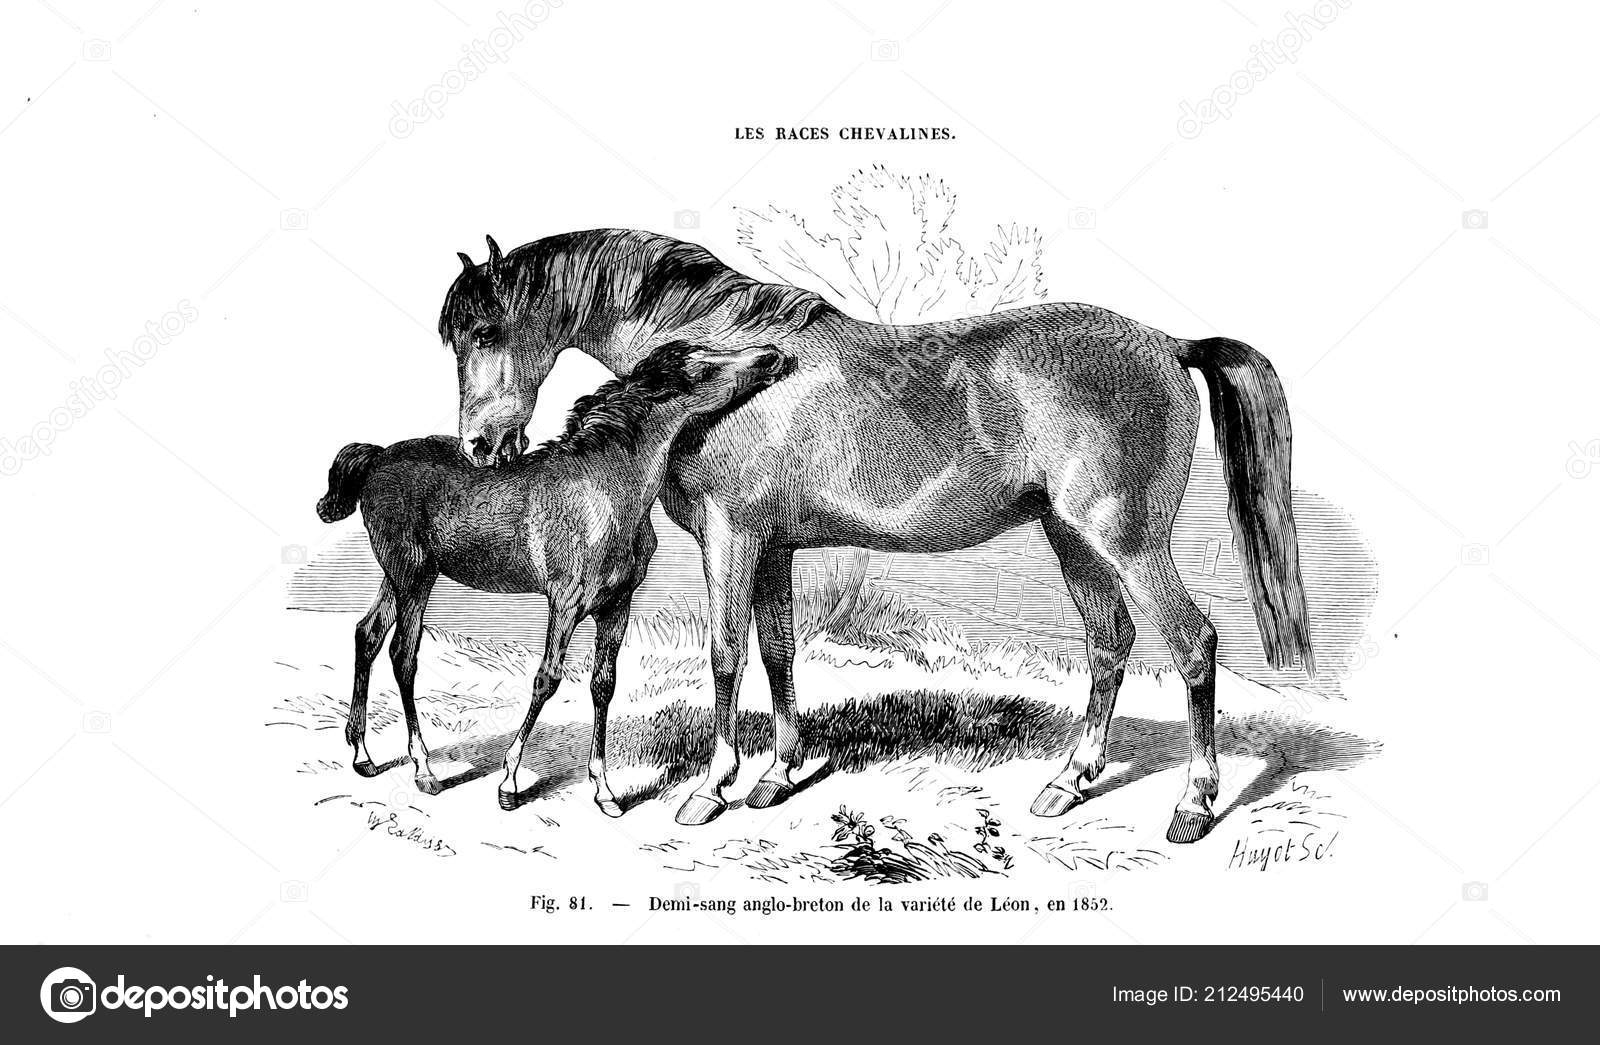 Illustration Horse Old Image Stock Photo C Ruskpp 212495440